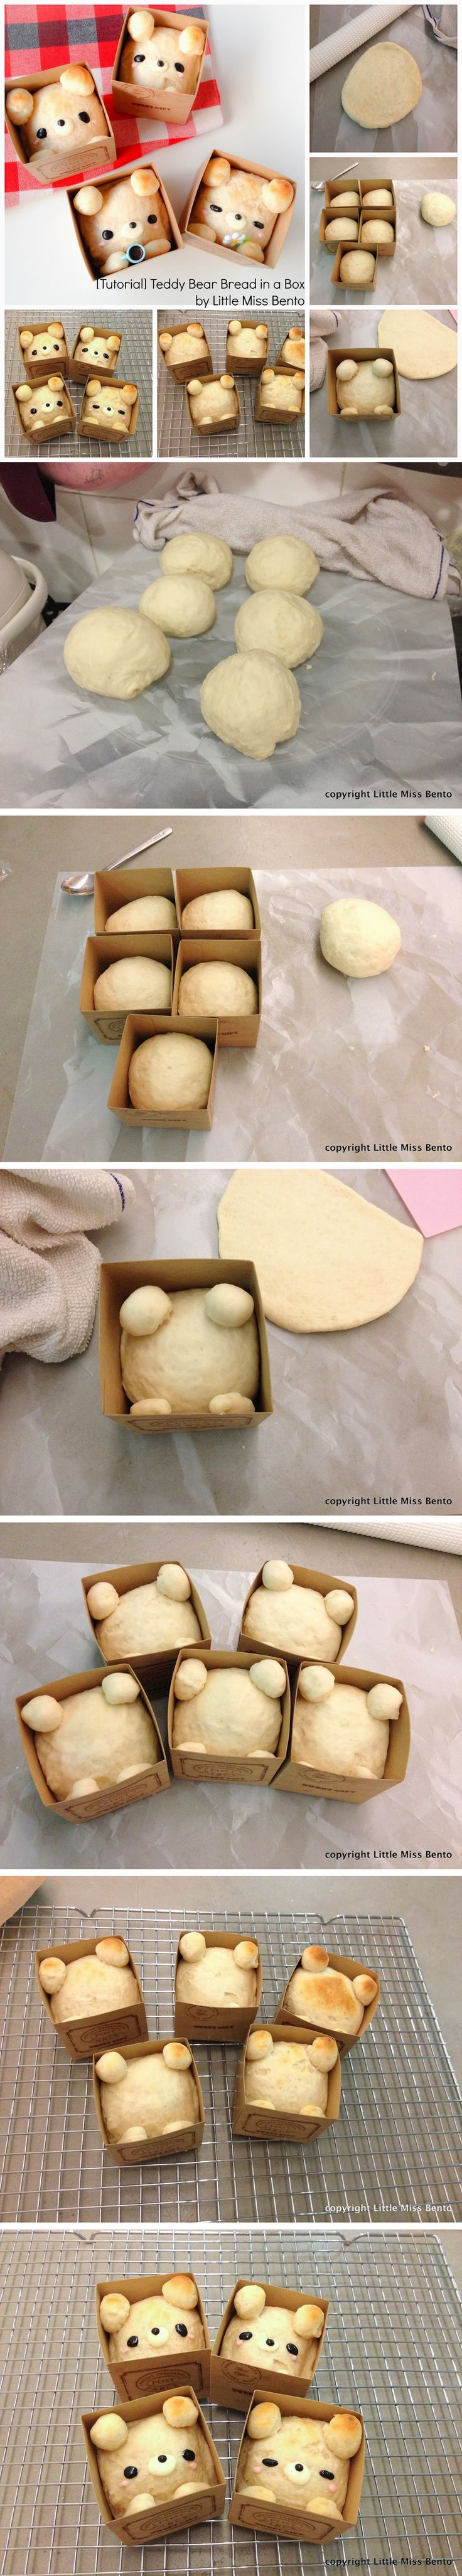 Bread teddy in a box.we had so much fun.If you put some foodcolor in it, it will be more fun: